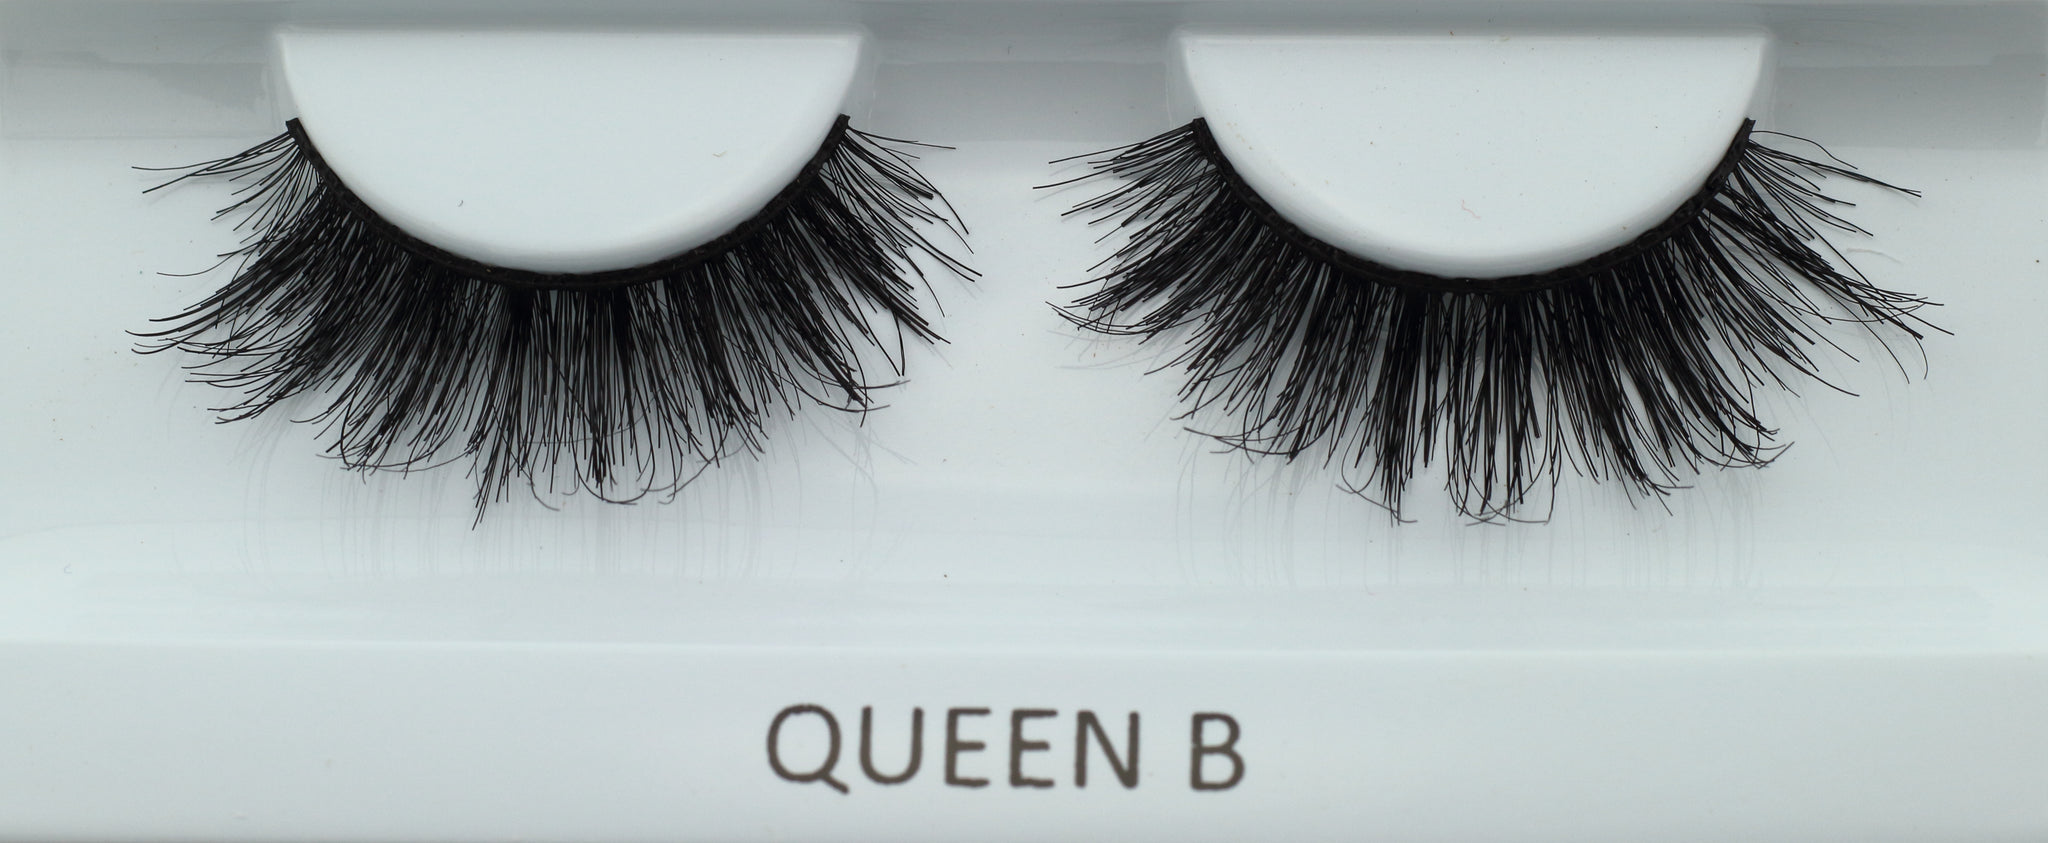 339c6d9ec02 KOKO Lashes-Queen B | Naka Cosmetics